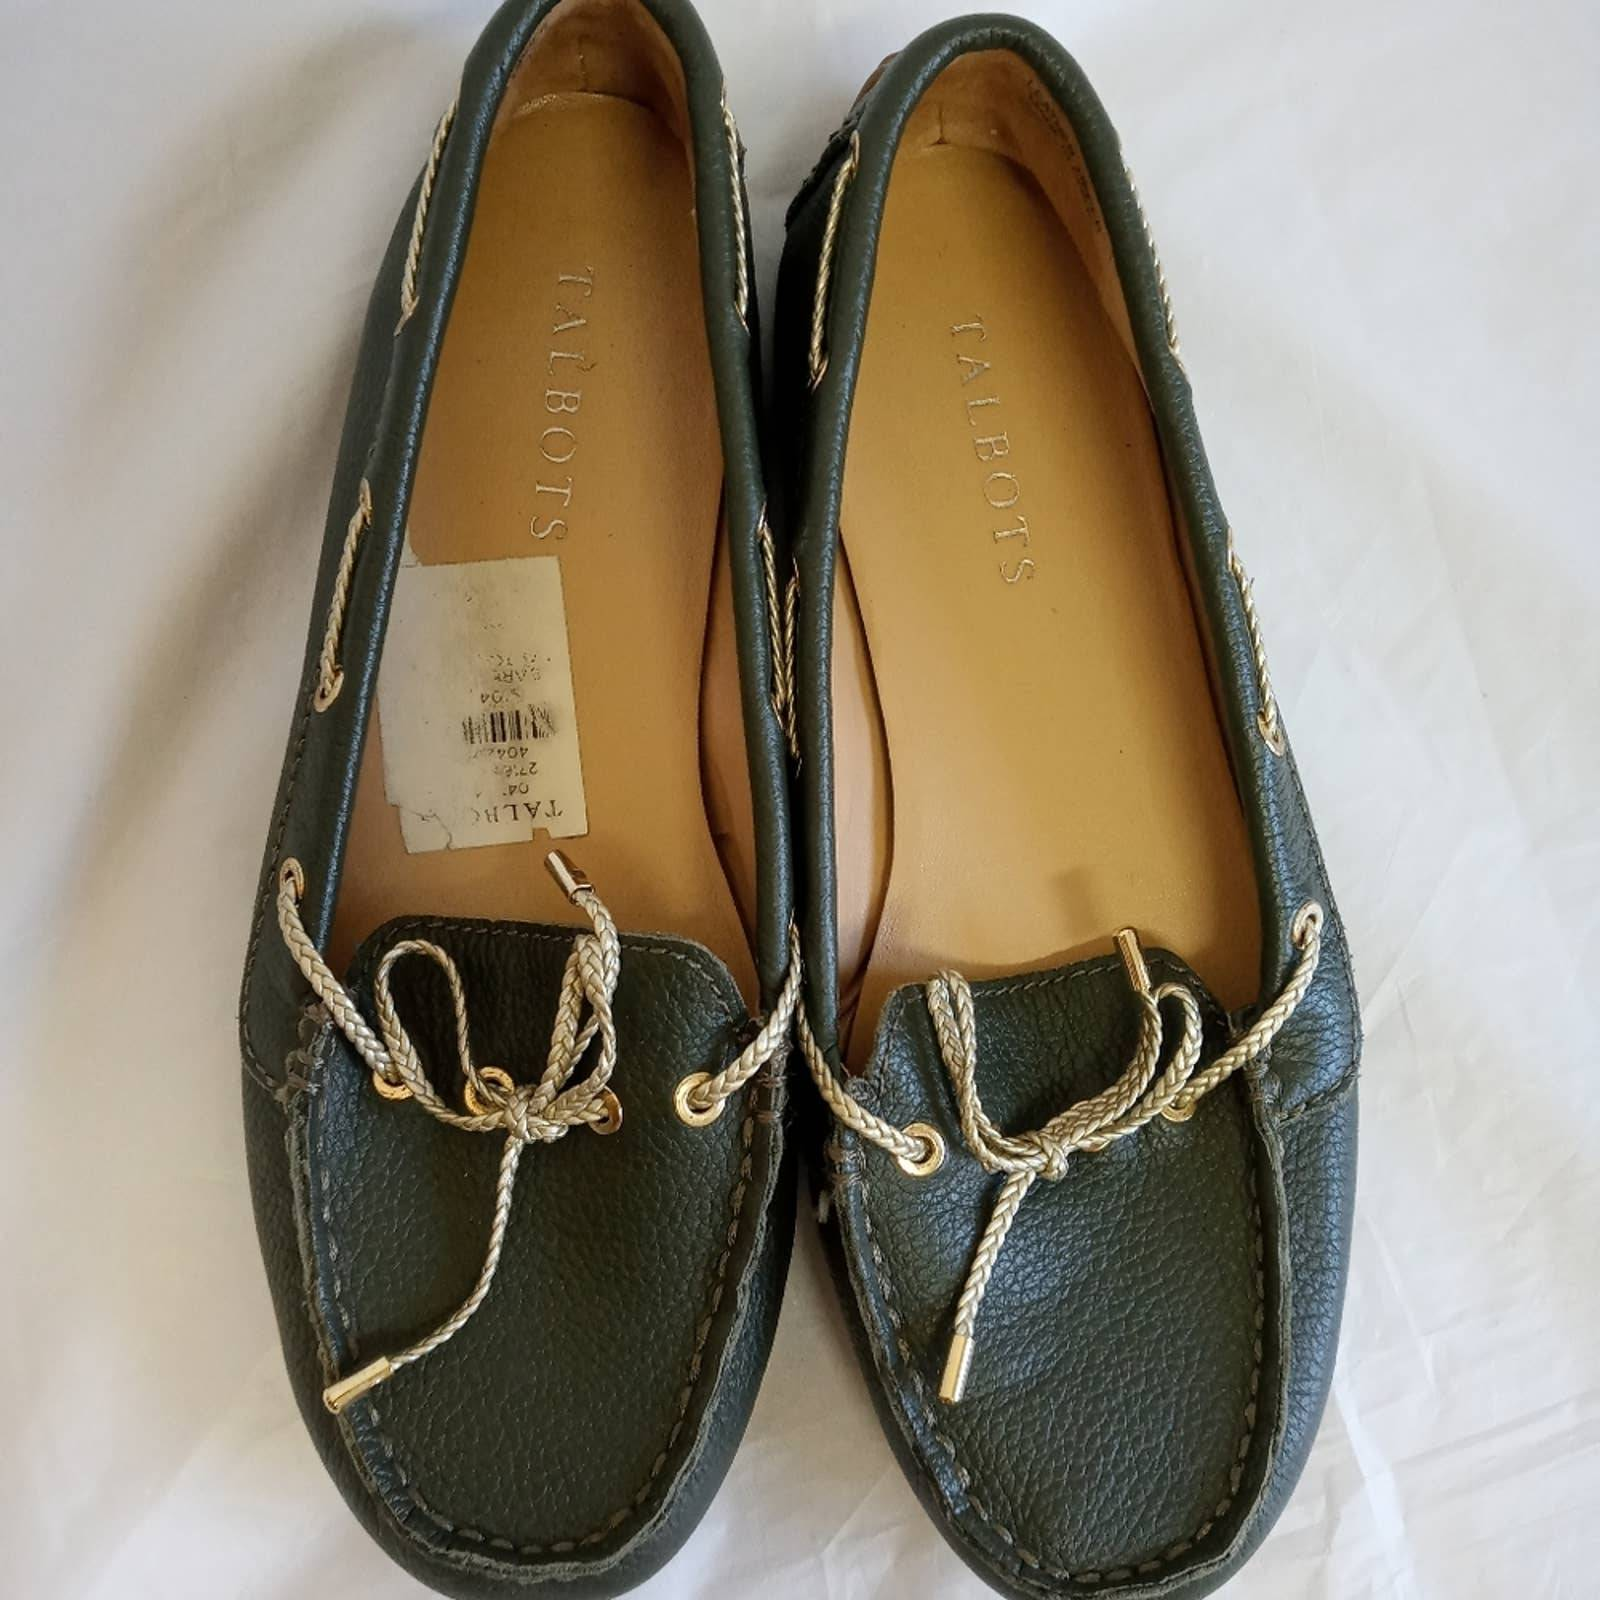 Talbots flats green loafers moccasins